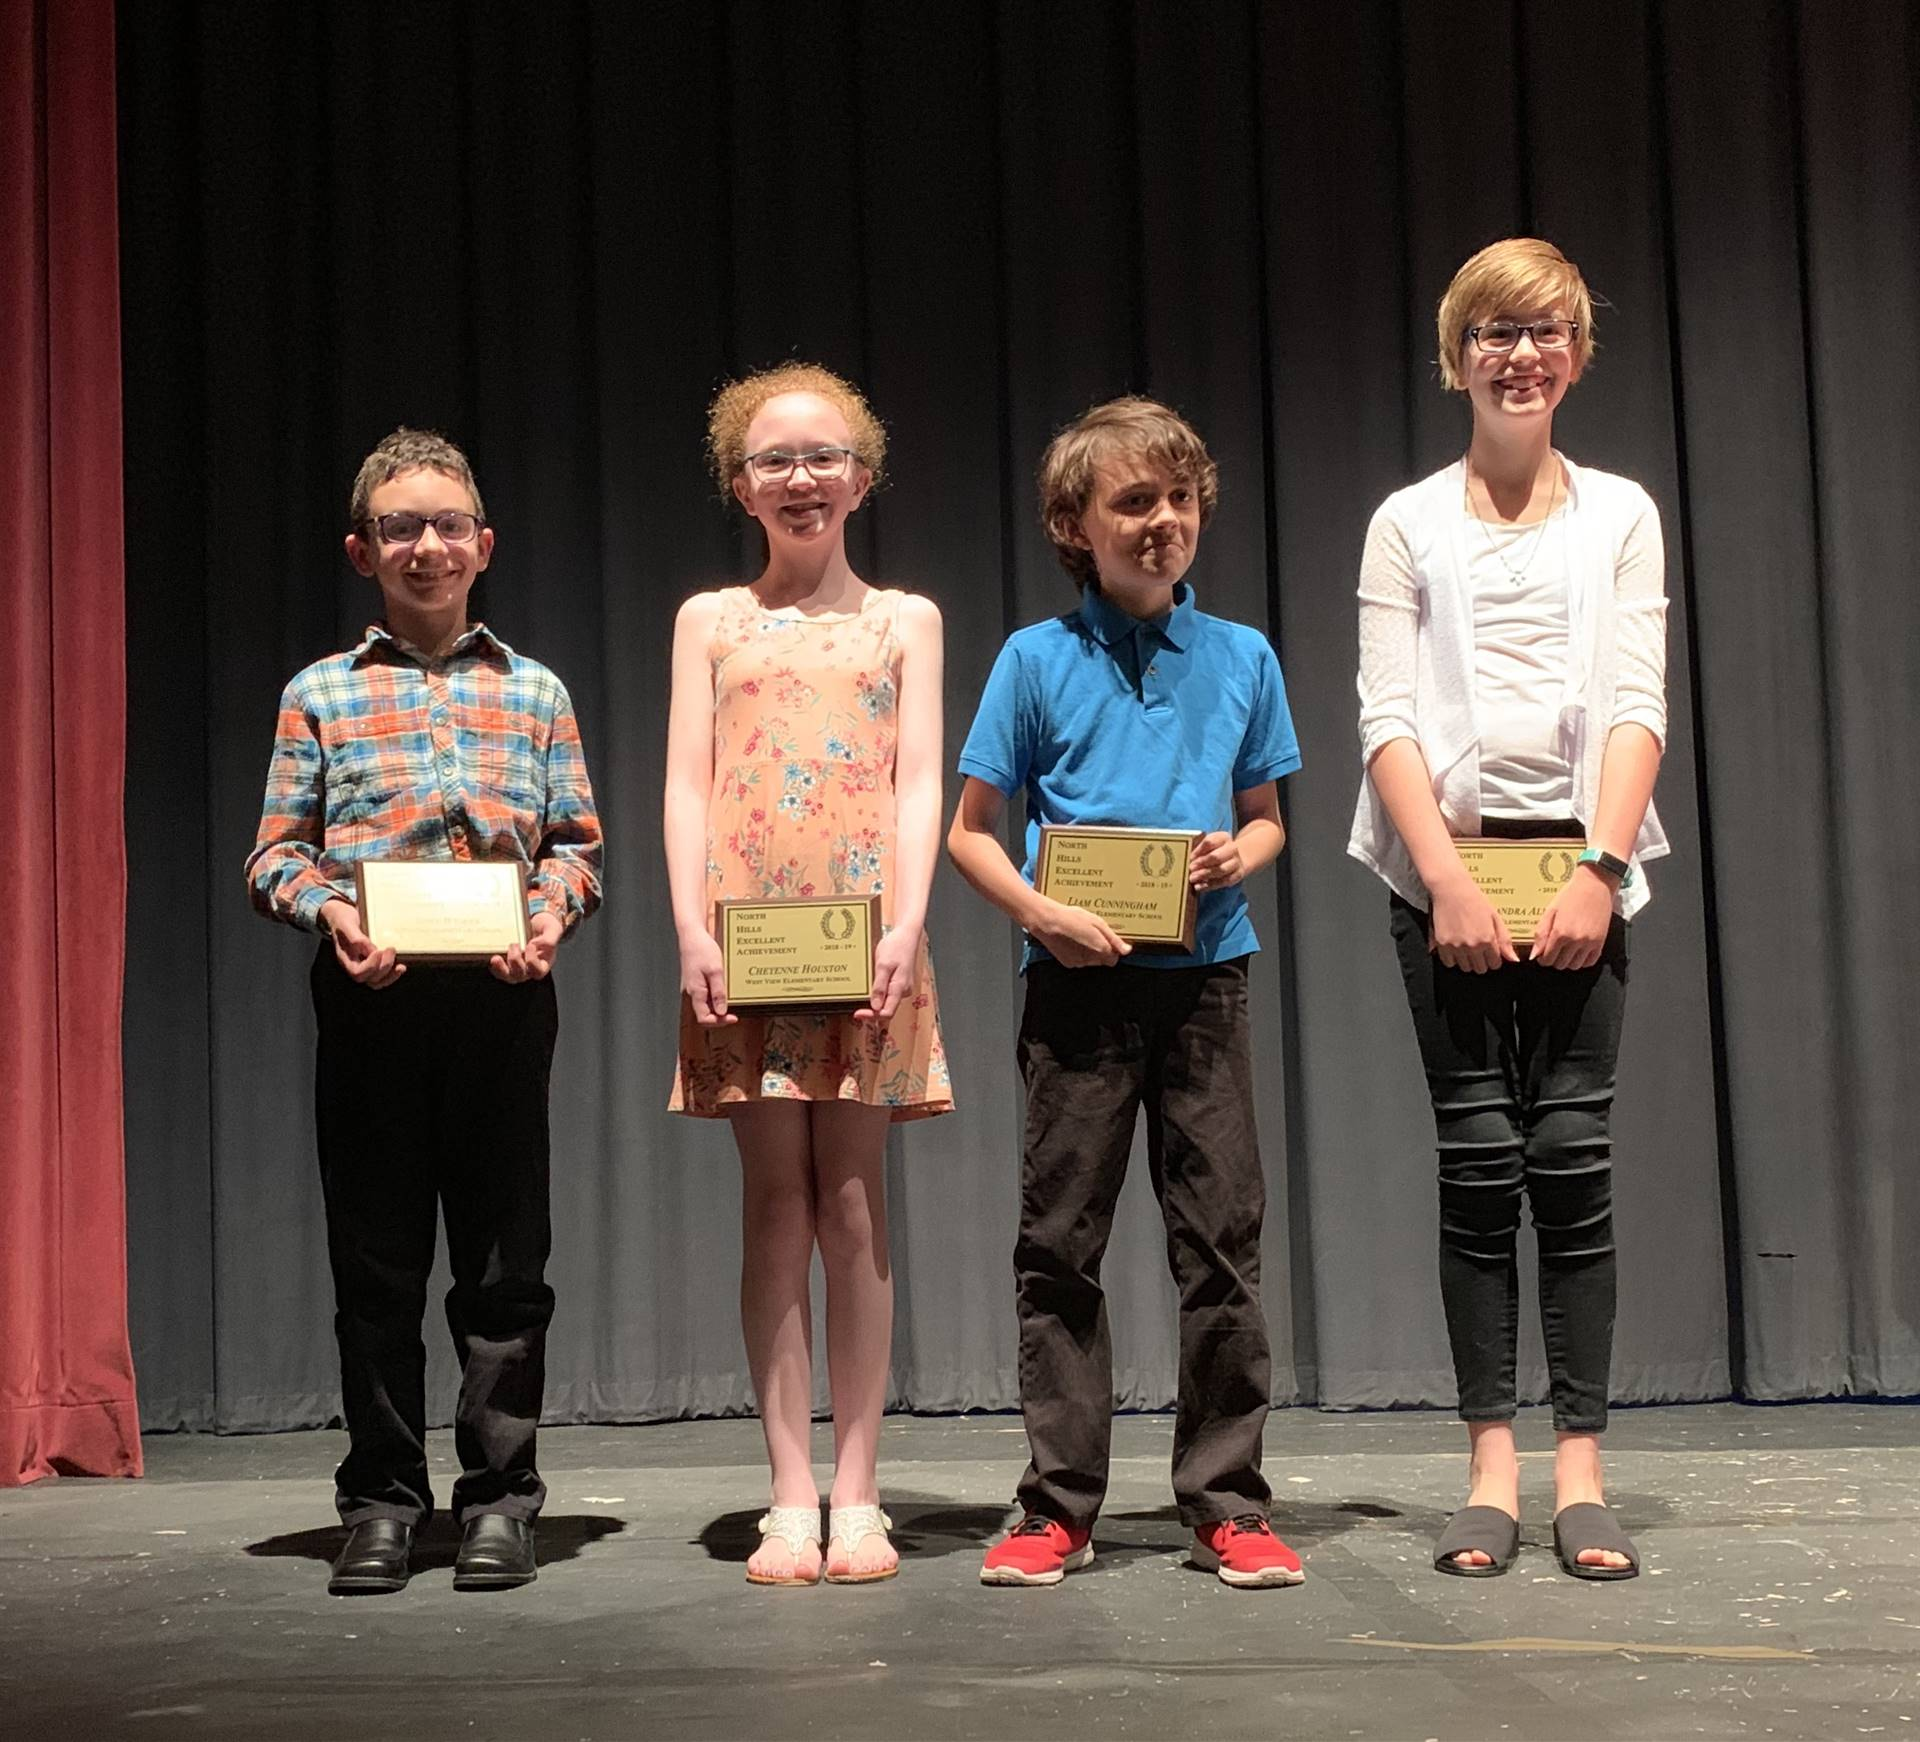 2019 NHEA Awards: West View Elementary Winners